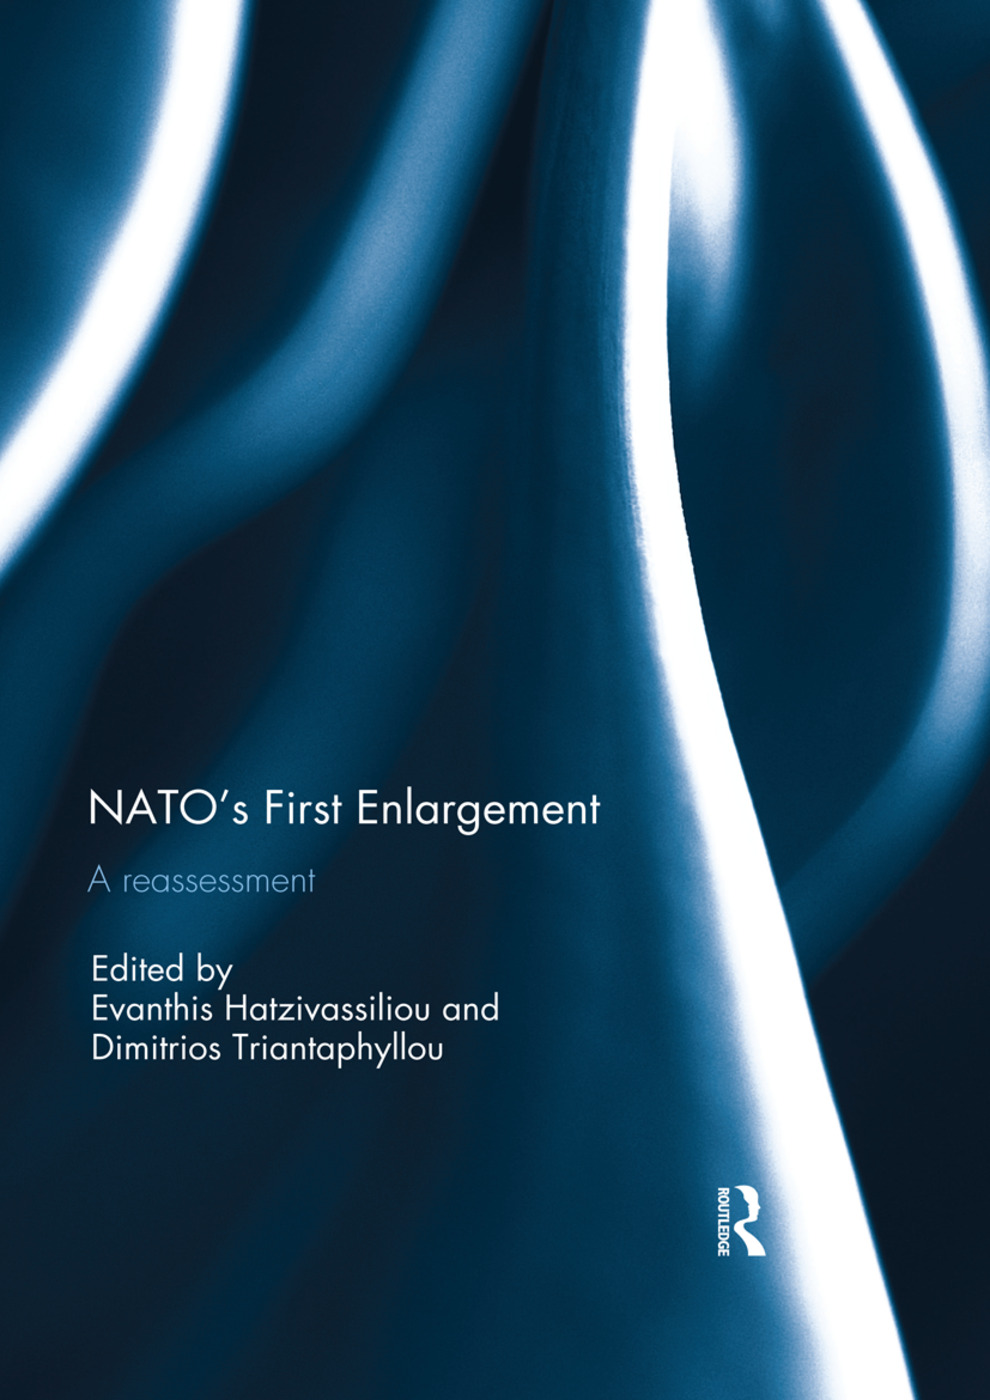 NATO's First Enlargement: A Reassessment book cover